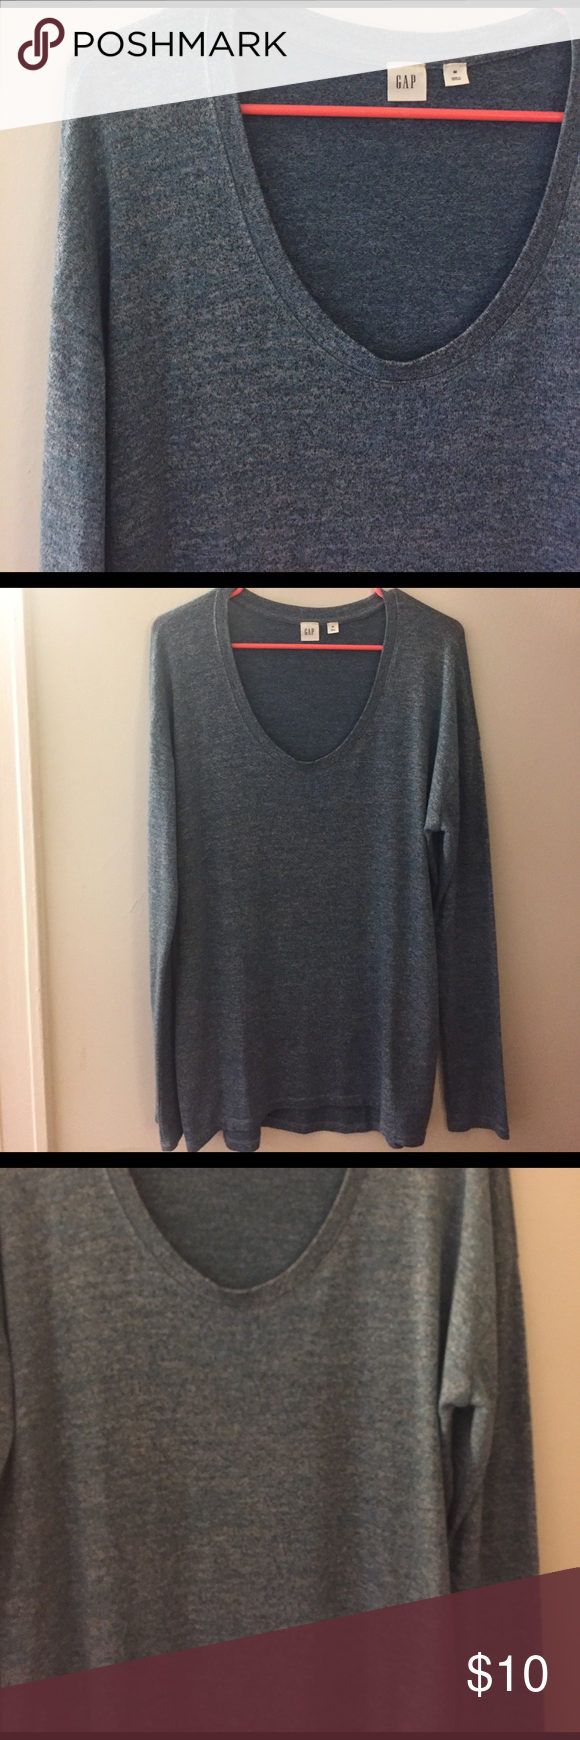 Gap basic long sleeve Brand new long sleeve gap crew neck tee. Excellent condition and never worn. Perfect for layering. GAP Tops Tees - Long Sleeve